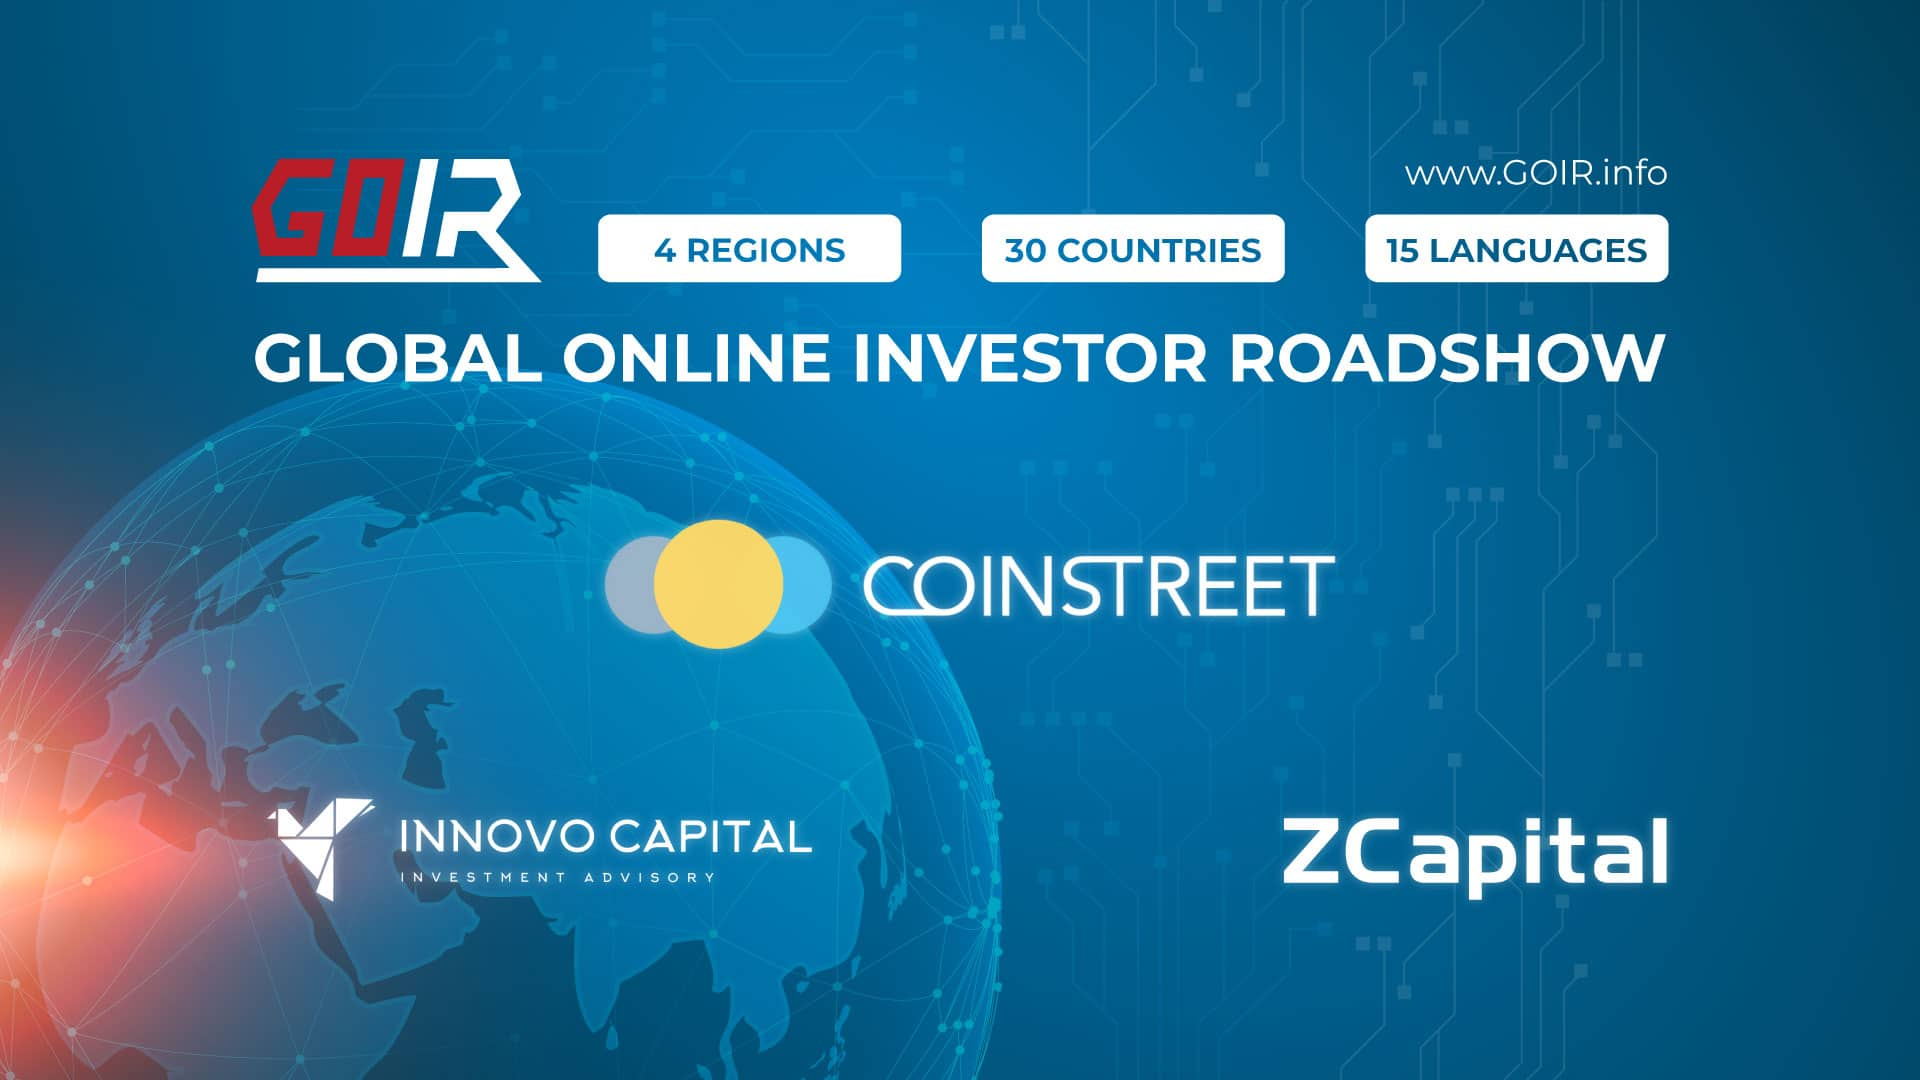 GOIR Expands to China and Europe with ZCapital and Innovo Capital